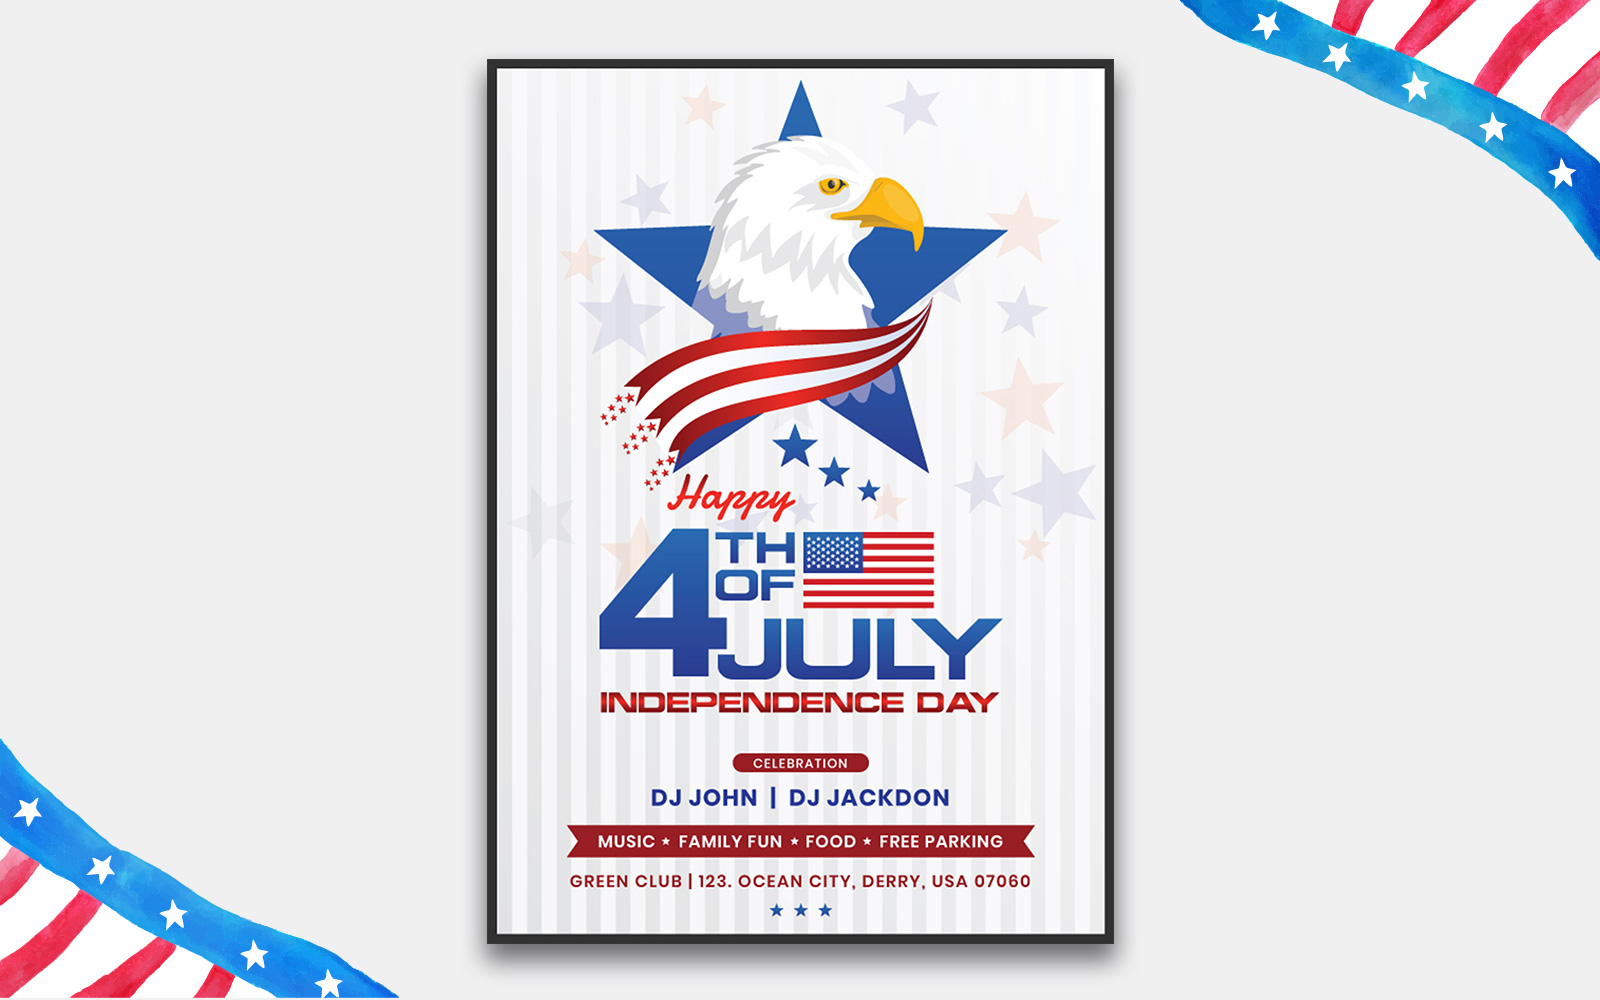 USA Independence Day Flyer - Eagle in Stars and Stripes Design